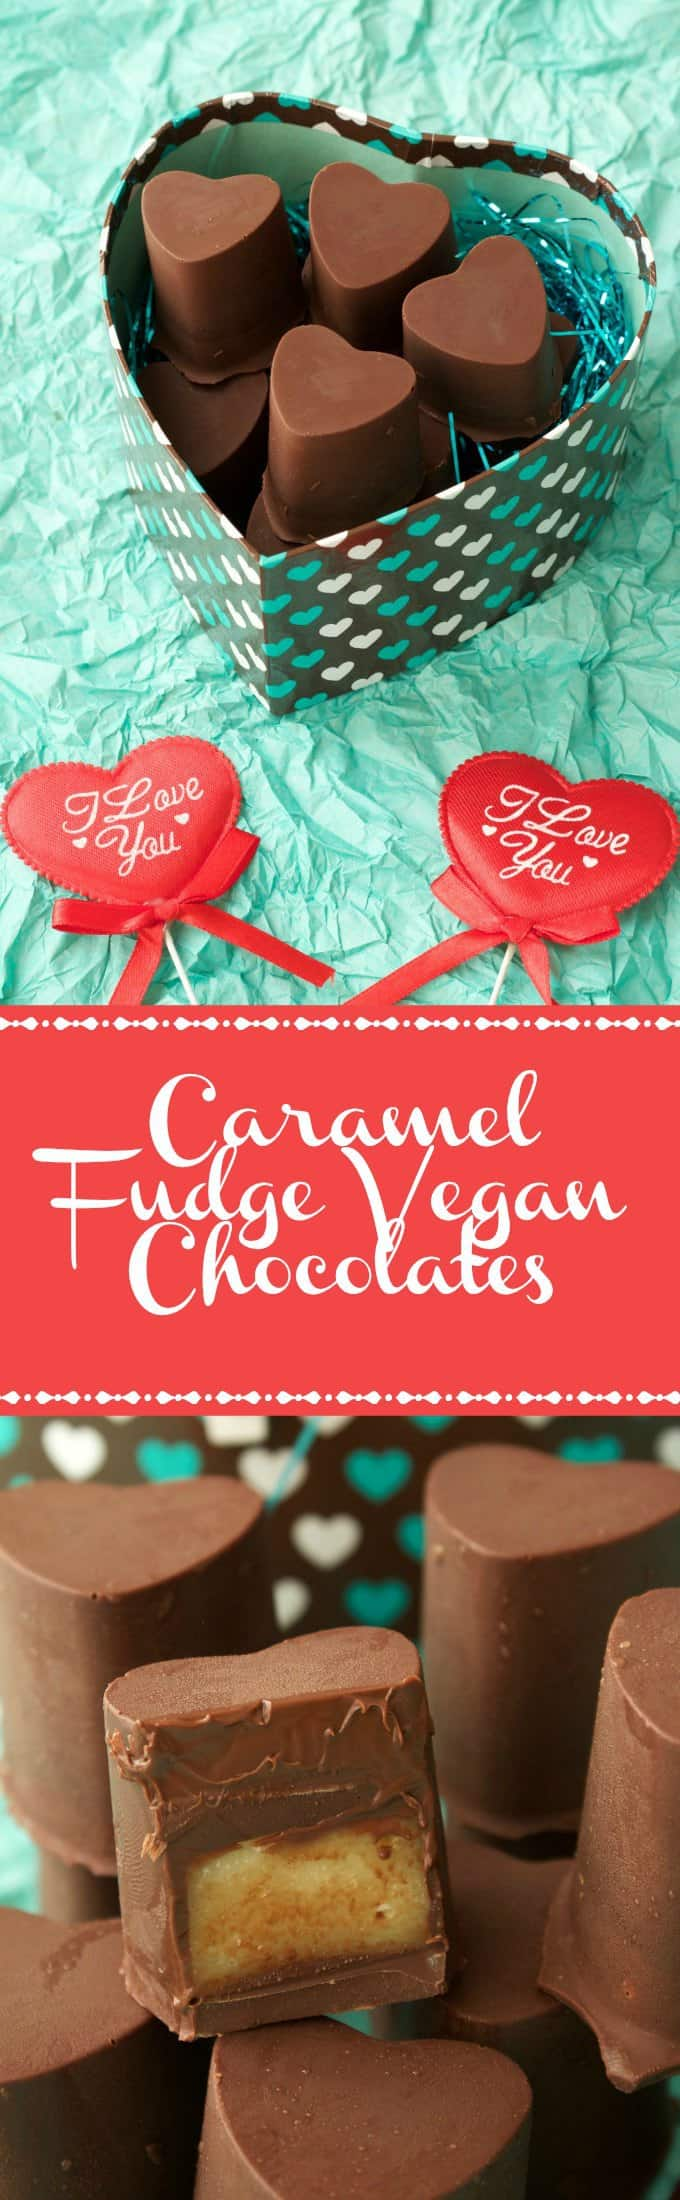 These heart-shaped caramel fudge vegan chocolates are perfect for a romantic occasion such as Valentines Day. Vegan, gluten-free, easy and fun. | lovingitvegan.com